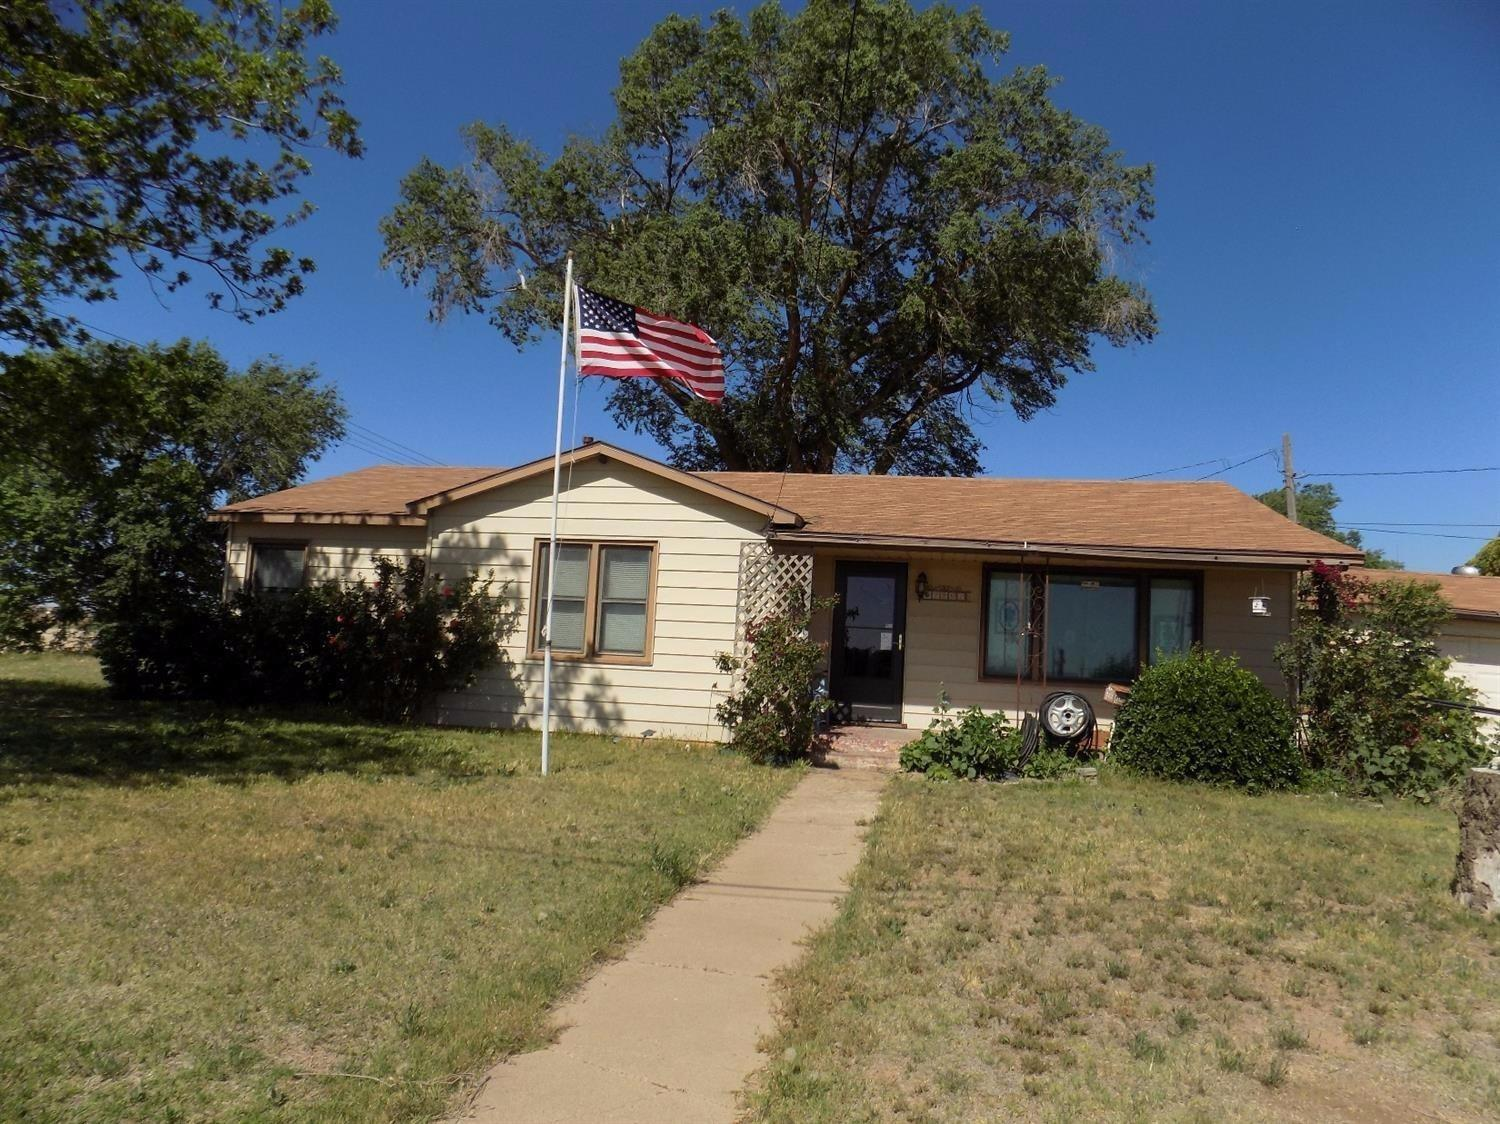 This property is in a great location. This is a developing area. It is a corner lot with easy access to both the Clovis highway and the loop. Take a look at this property today.